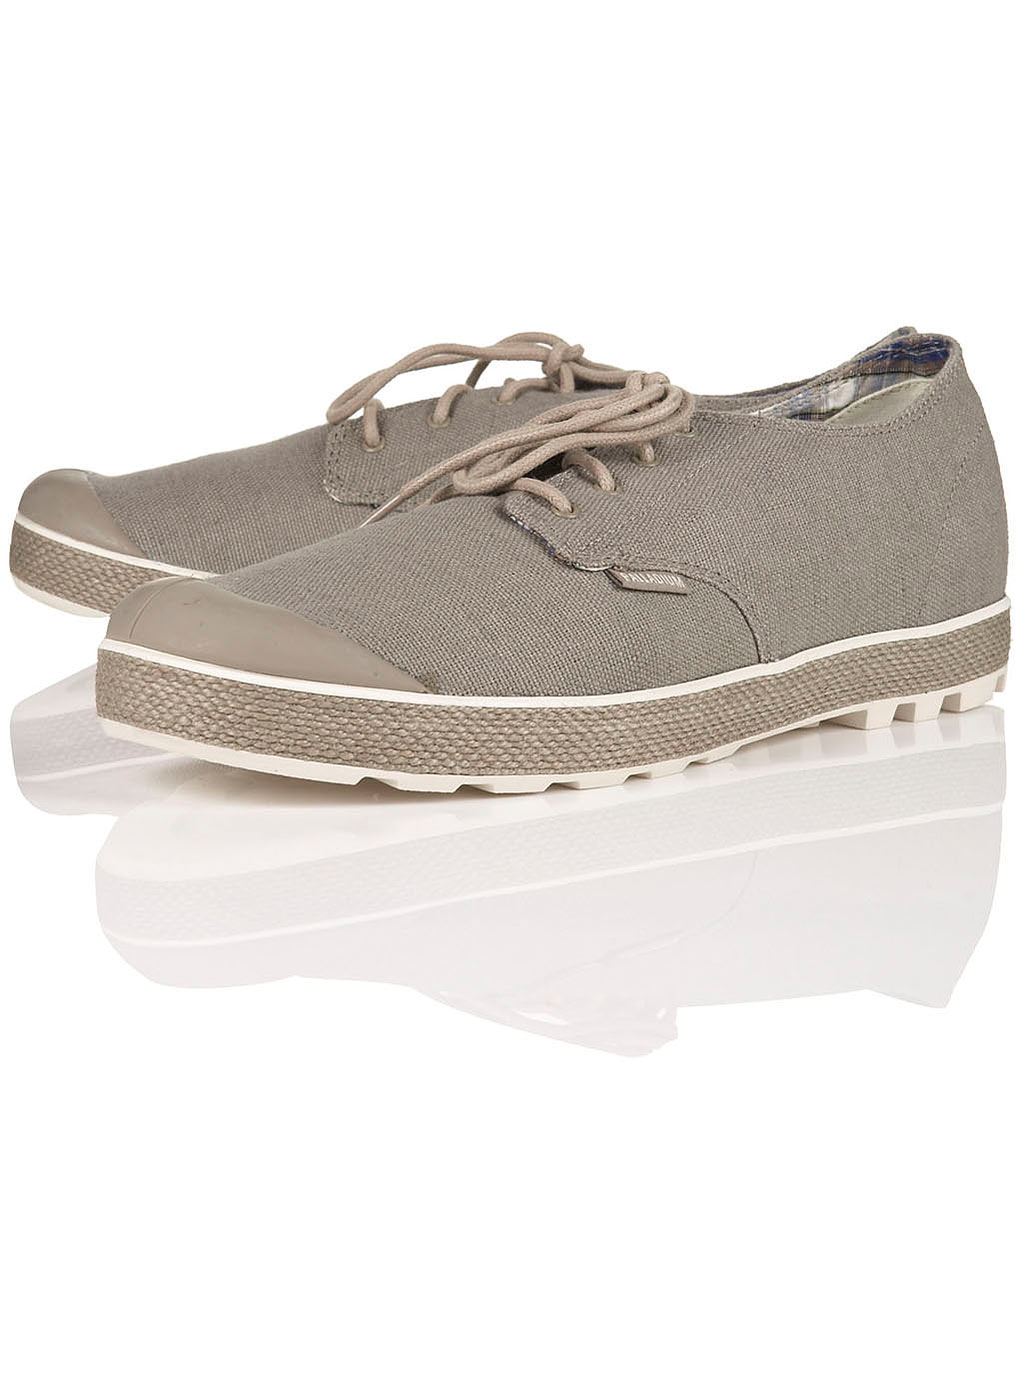 palladium washed pa hightop sneaker in gray for